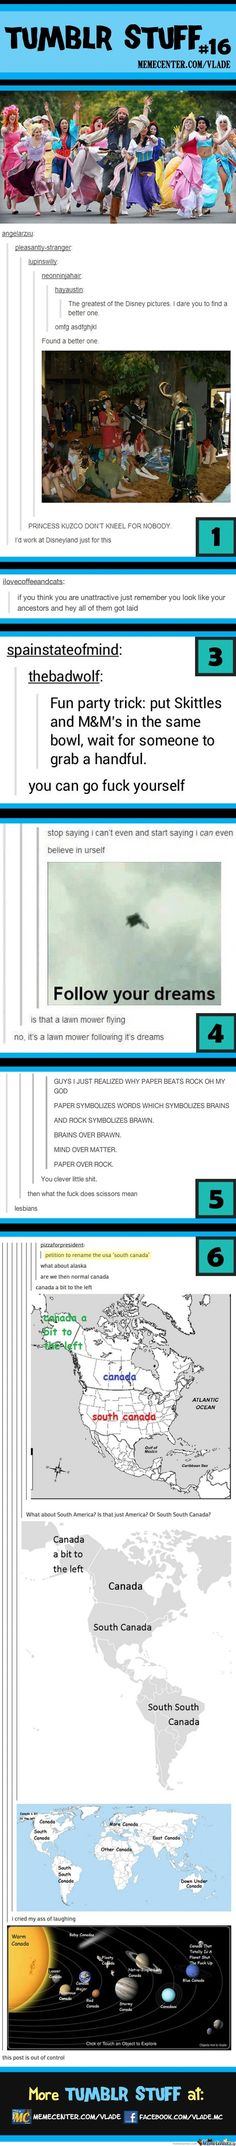 Tumblr stuff. I agree with the ending where someone said this post was a bit out of control. haha